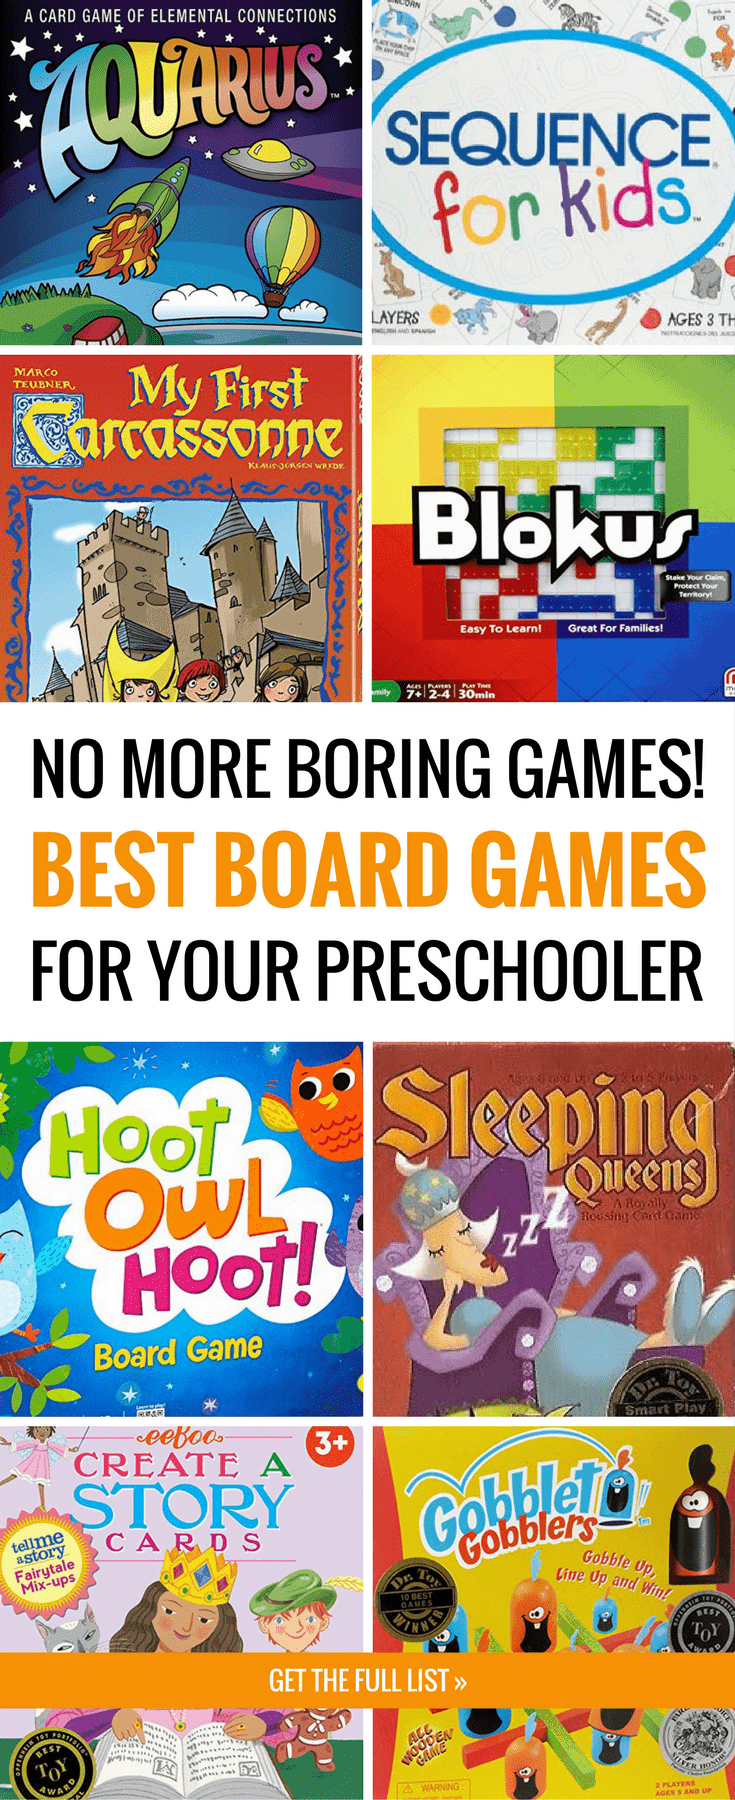 Forget boring games like Candyland and get these fun preschool board games instead. These card games and board games for preschoolers are WAY more fun, so kids *and* parents enjoy them. The perfect list of family board games for all ages! When you're looking for the best board games for kids, start here. #boardgames #gamesforkids #cardgames #preschoolactivities #preschoolers